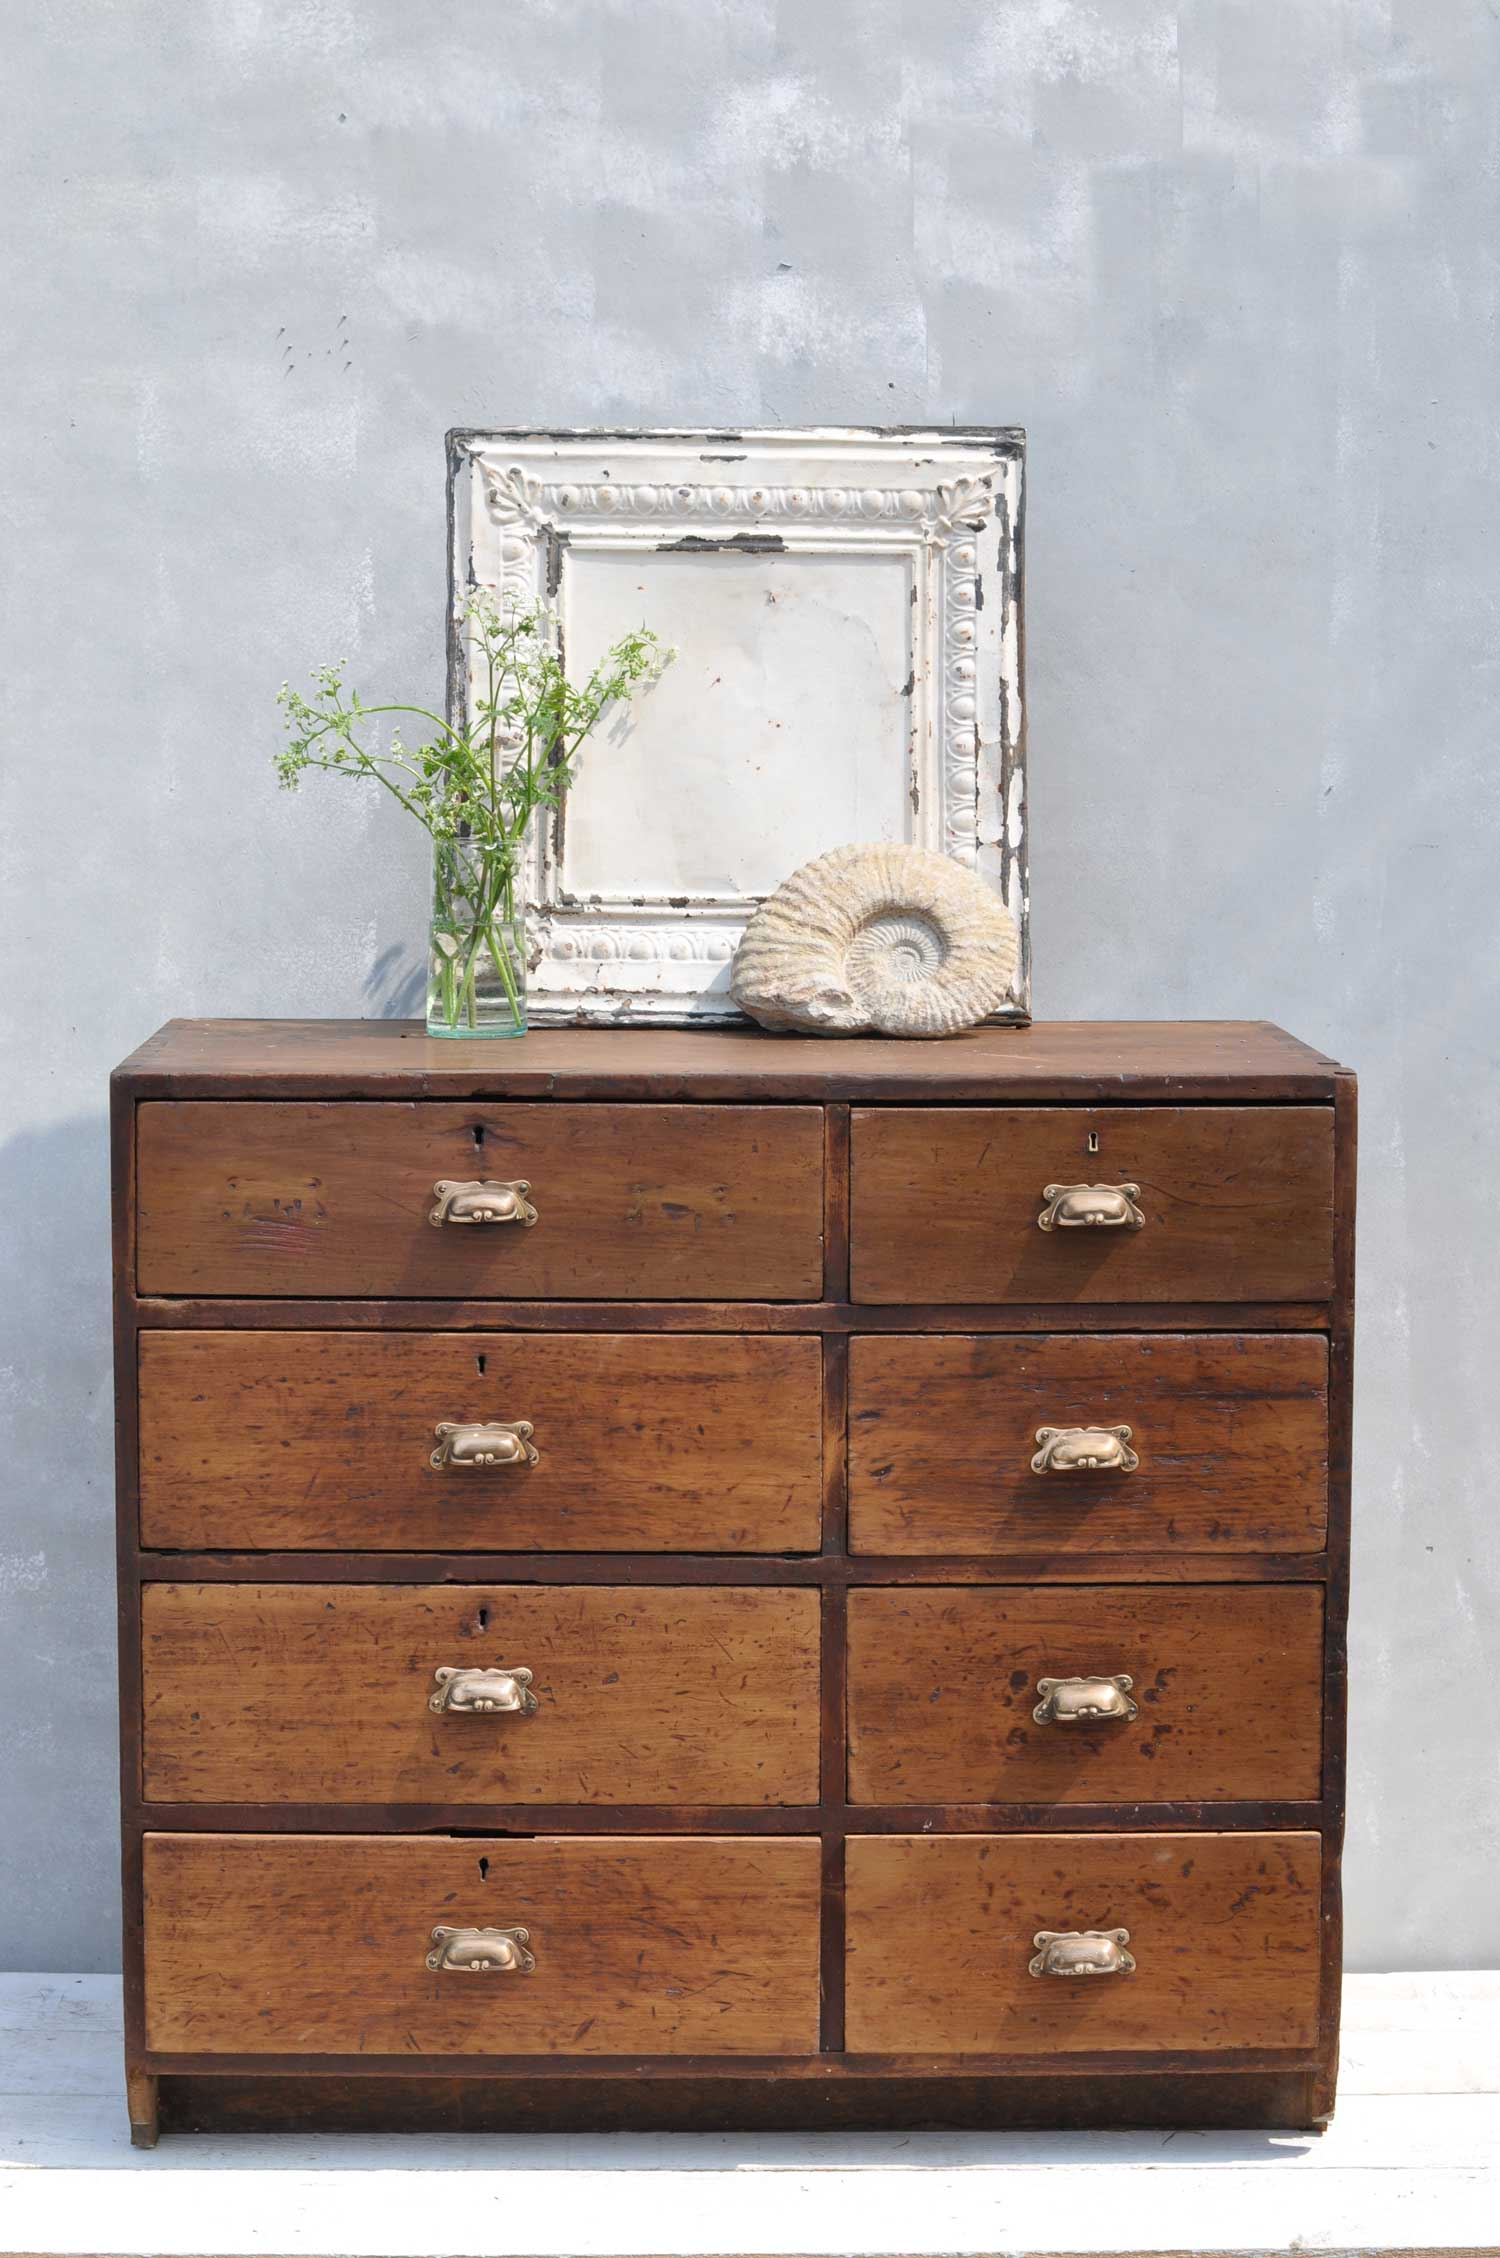 Antique Bank Tellers Chest of Drawers